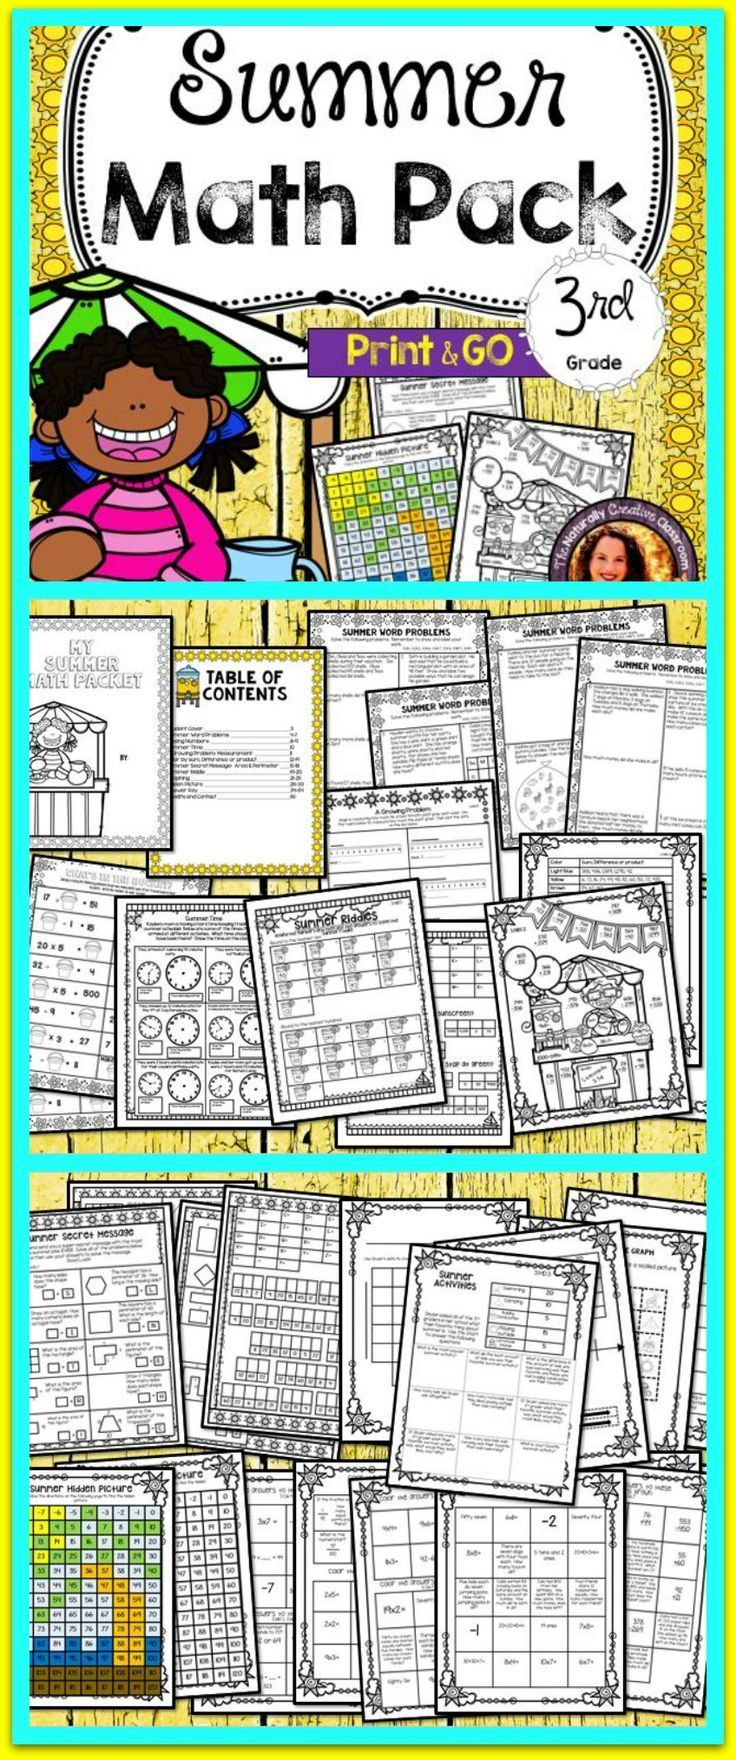 School is just around the corner!  This Summer Math Pack offers a fun and engaging way to review 3rd grade math standards, or to see what is ahead!  This packet covers 3 digit addition and subtraction, multiplication, division, time, rounding and so much